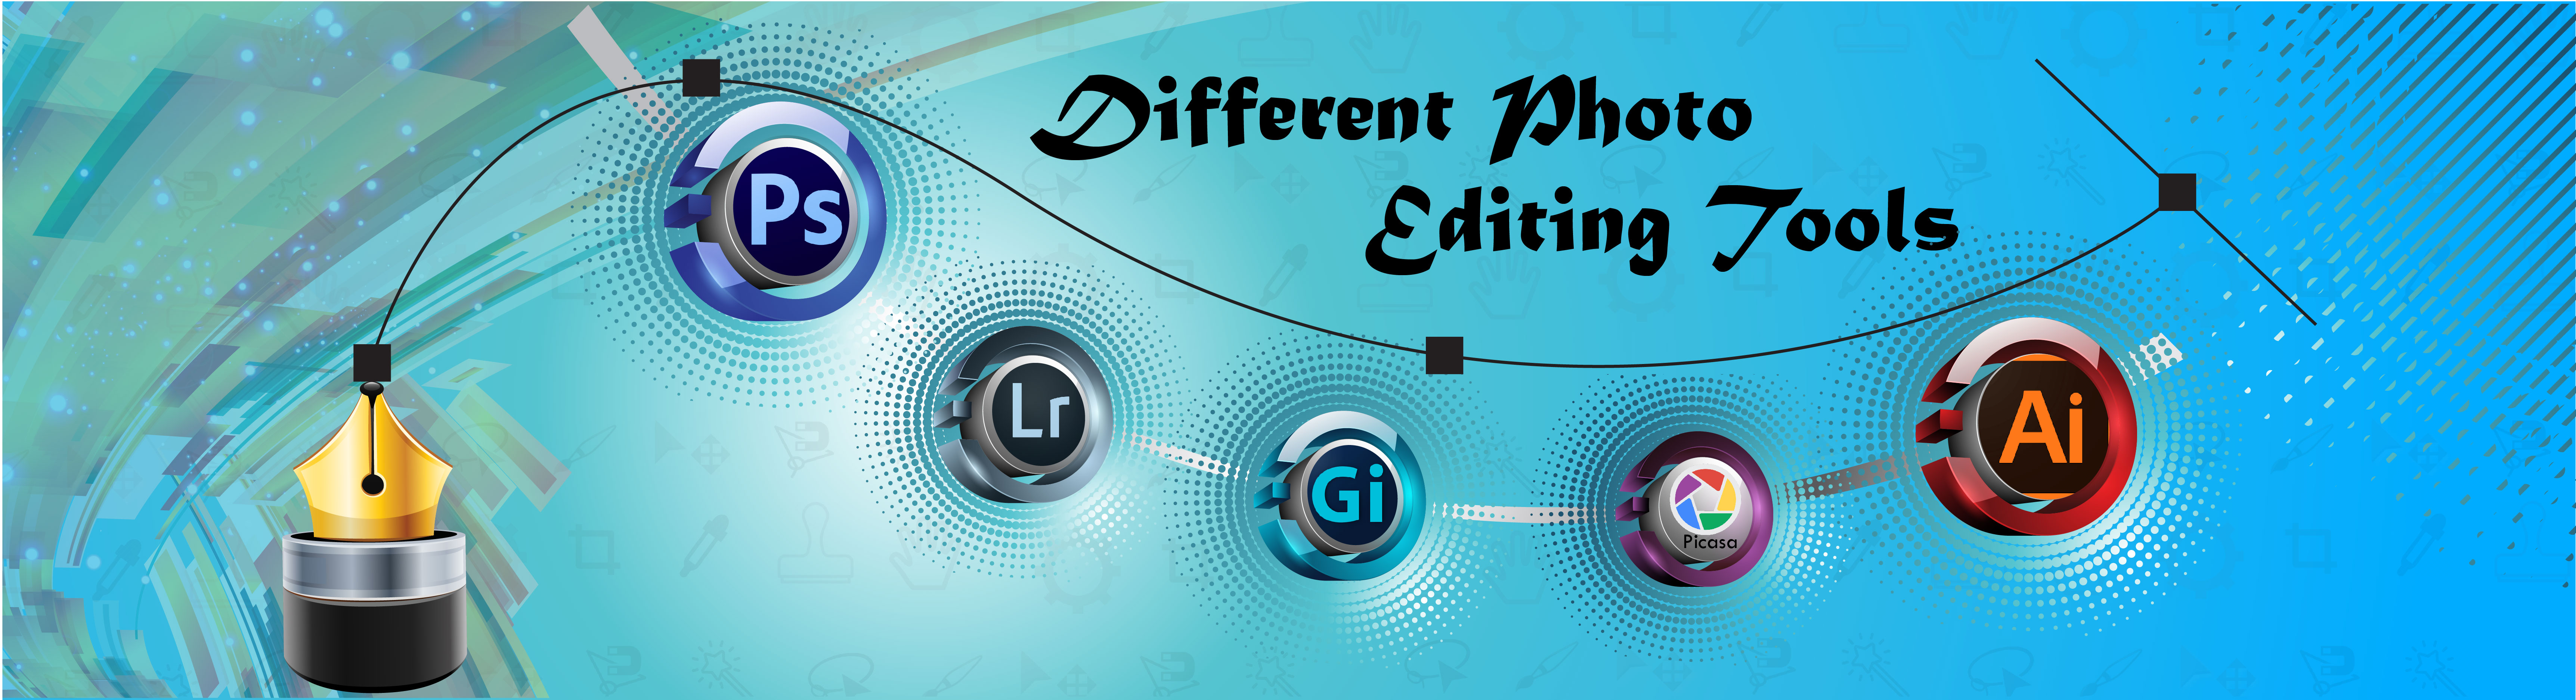 Different Photo Editing Tools